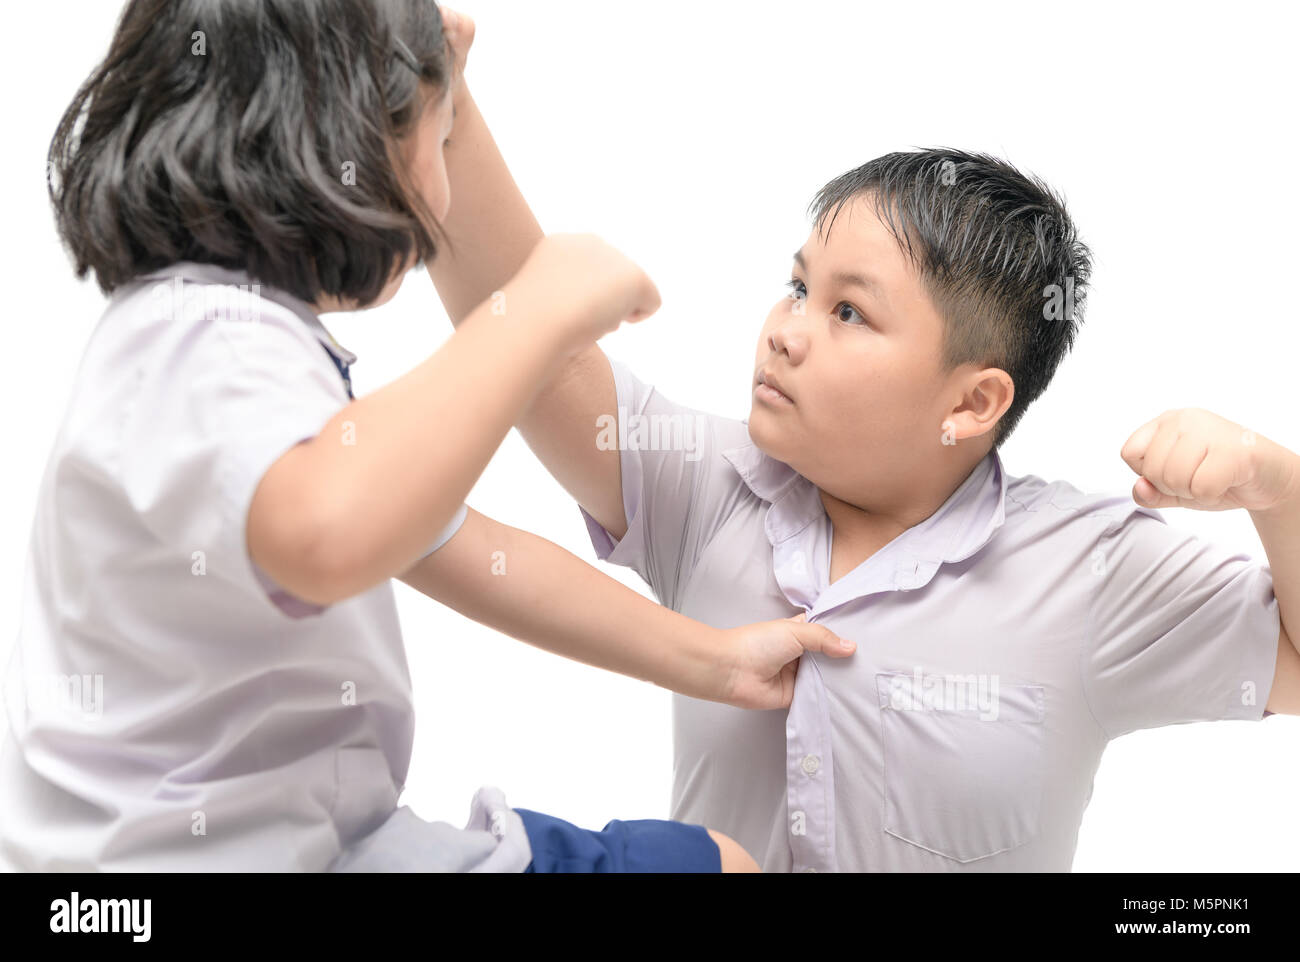 asian brother and sister quarreling isolated on white background, fighting children - Stock Image